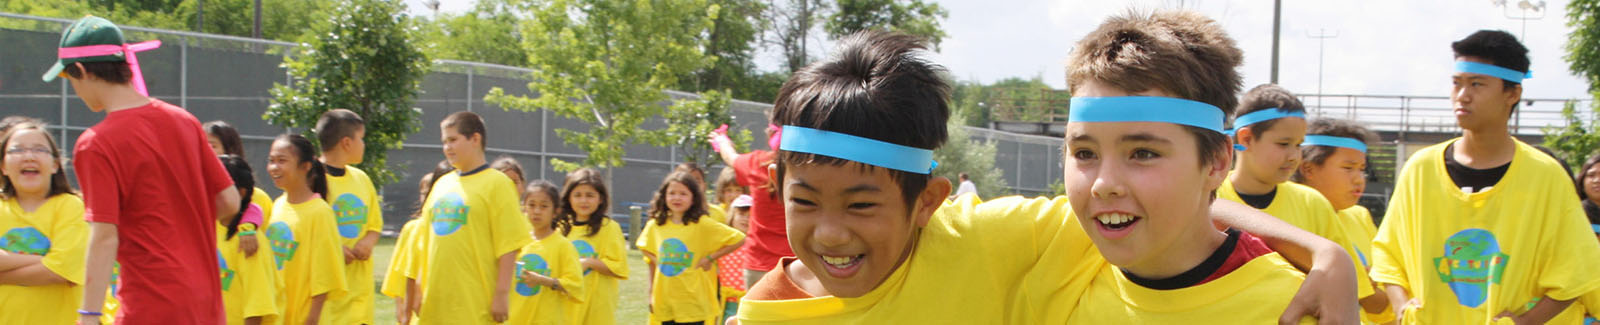 WASAC programs focus on bringing sports into the lives of young people.